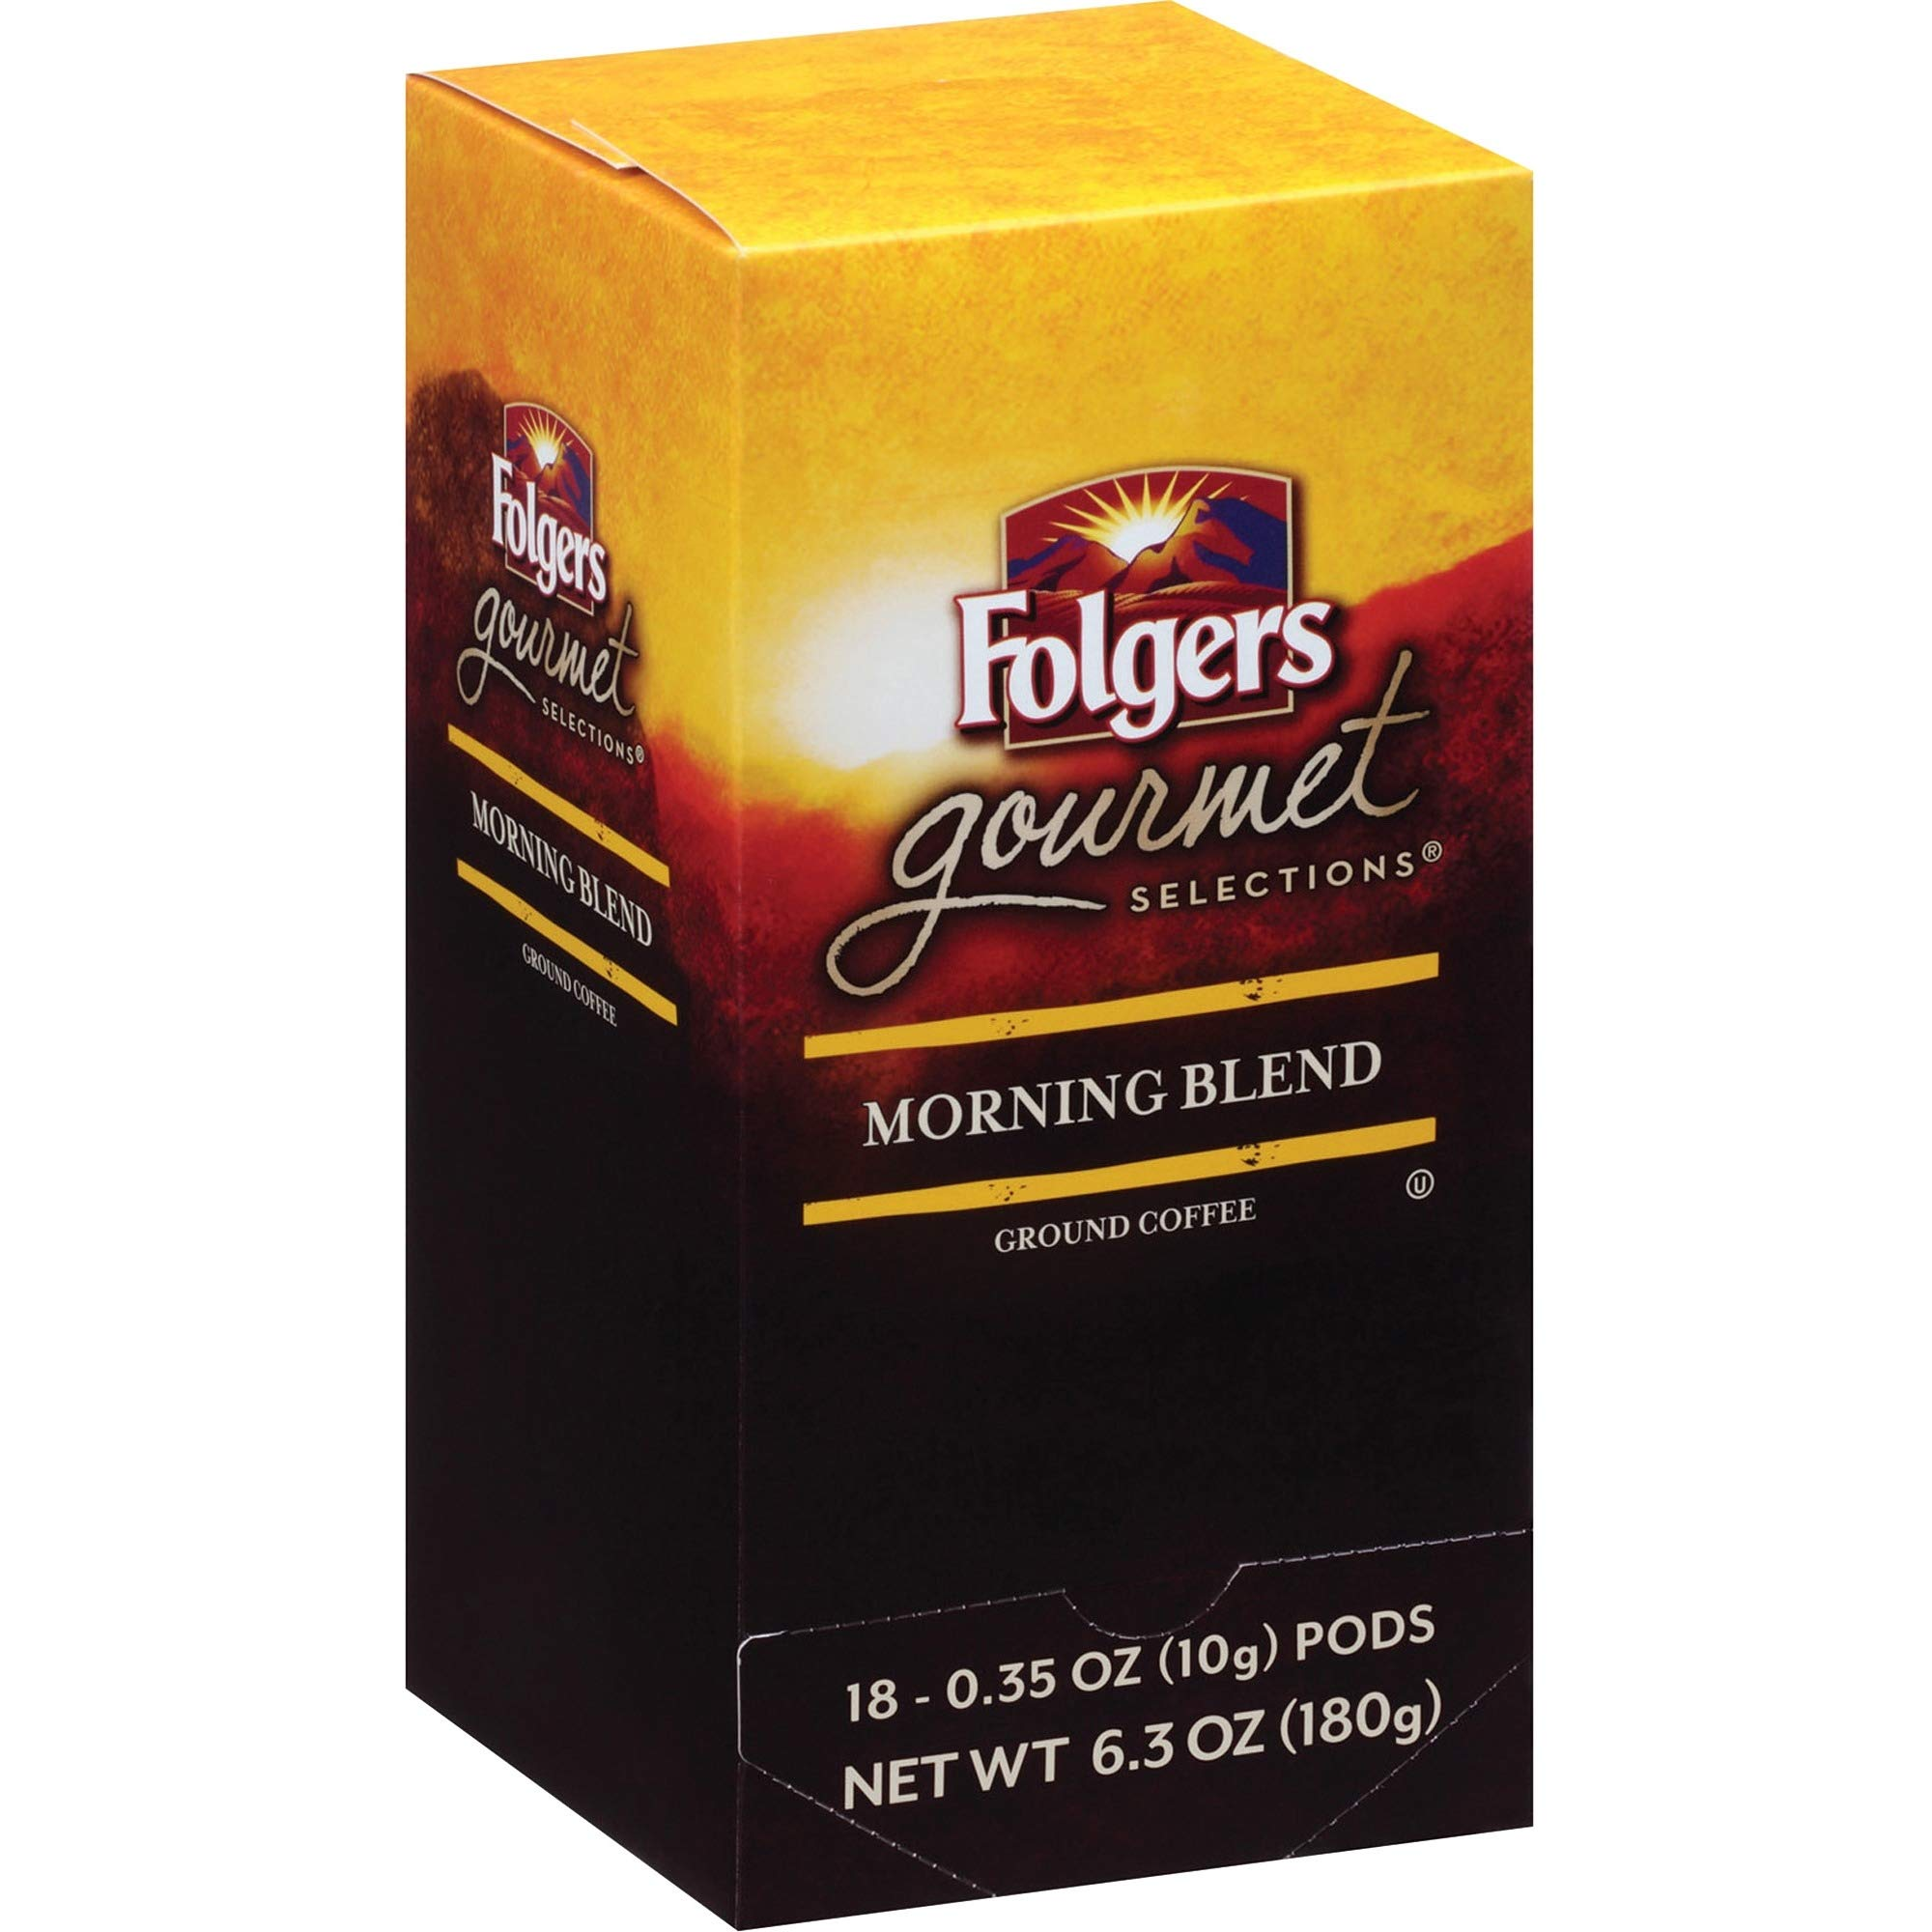 Folgers Gourmet Selections Coffee Pods,6.3 ounce